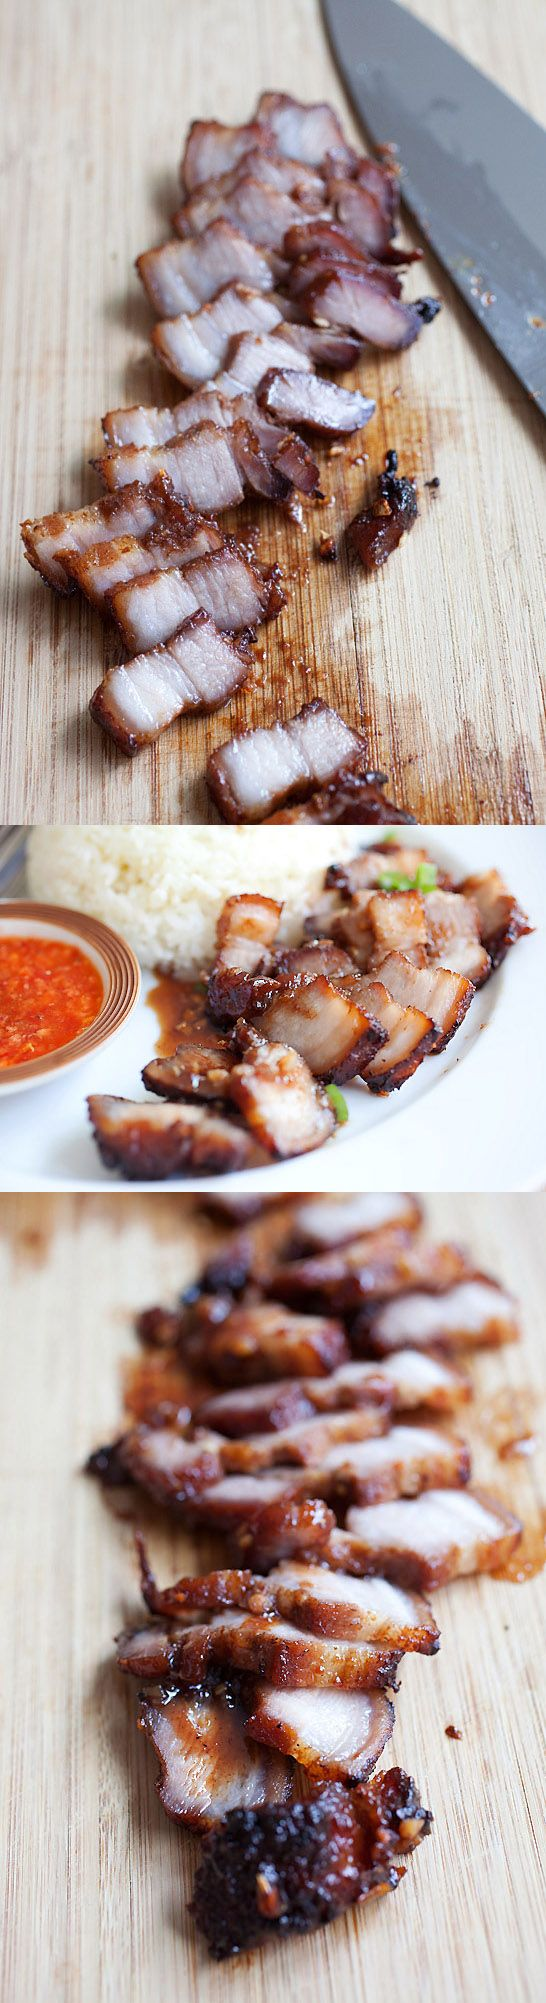 { Hong Kong} Chinese BBQ pork belly (char siu), your favorite Chinatown dish is super-easy to make at home with this no-fuss recipe | rasamalaysia.com